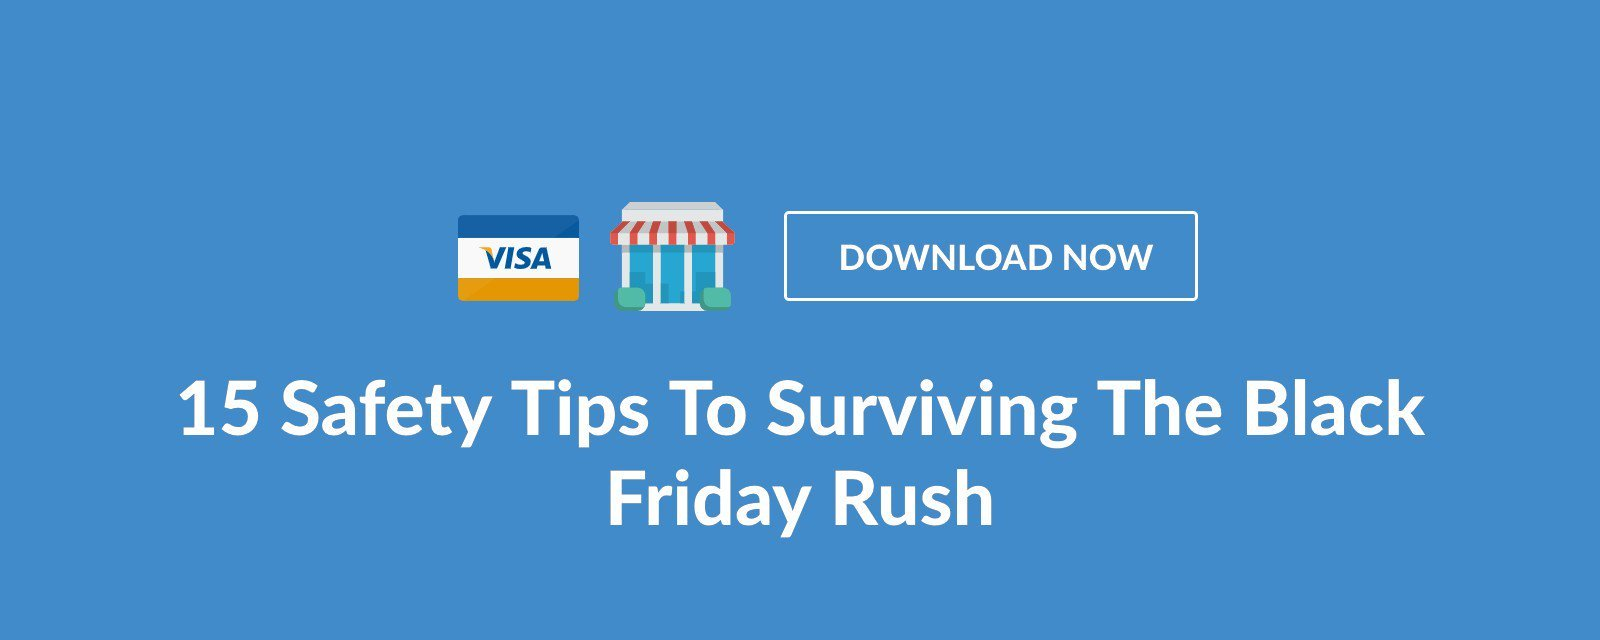 15 Safety Tips To Surviving The Black Friday Rush